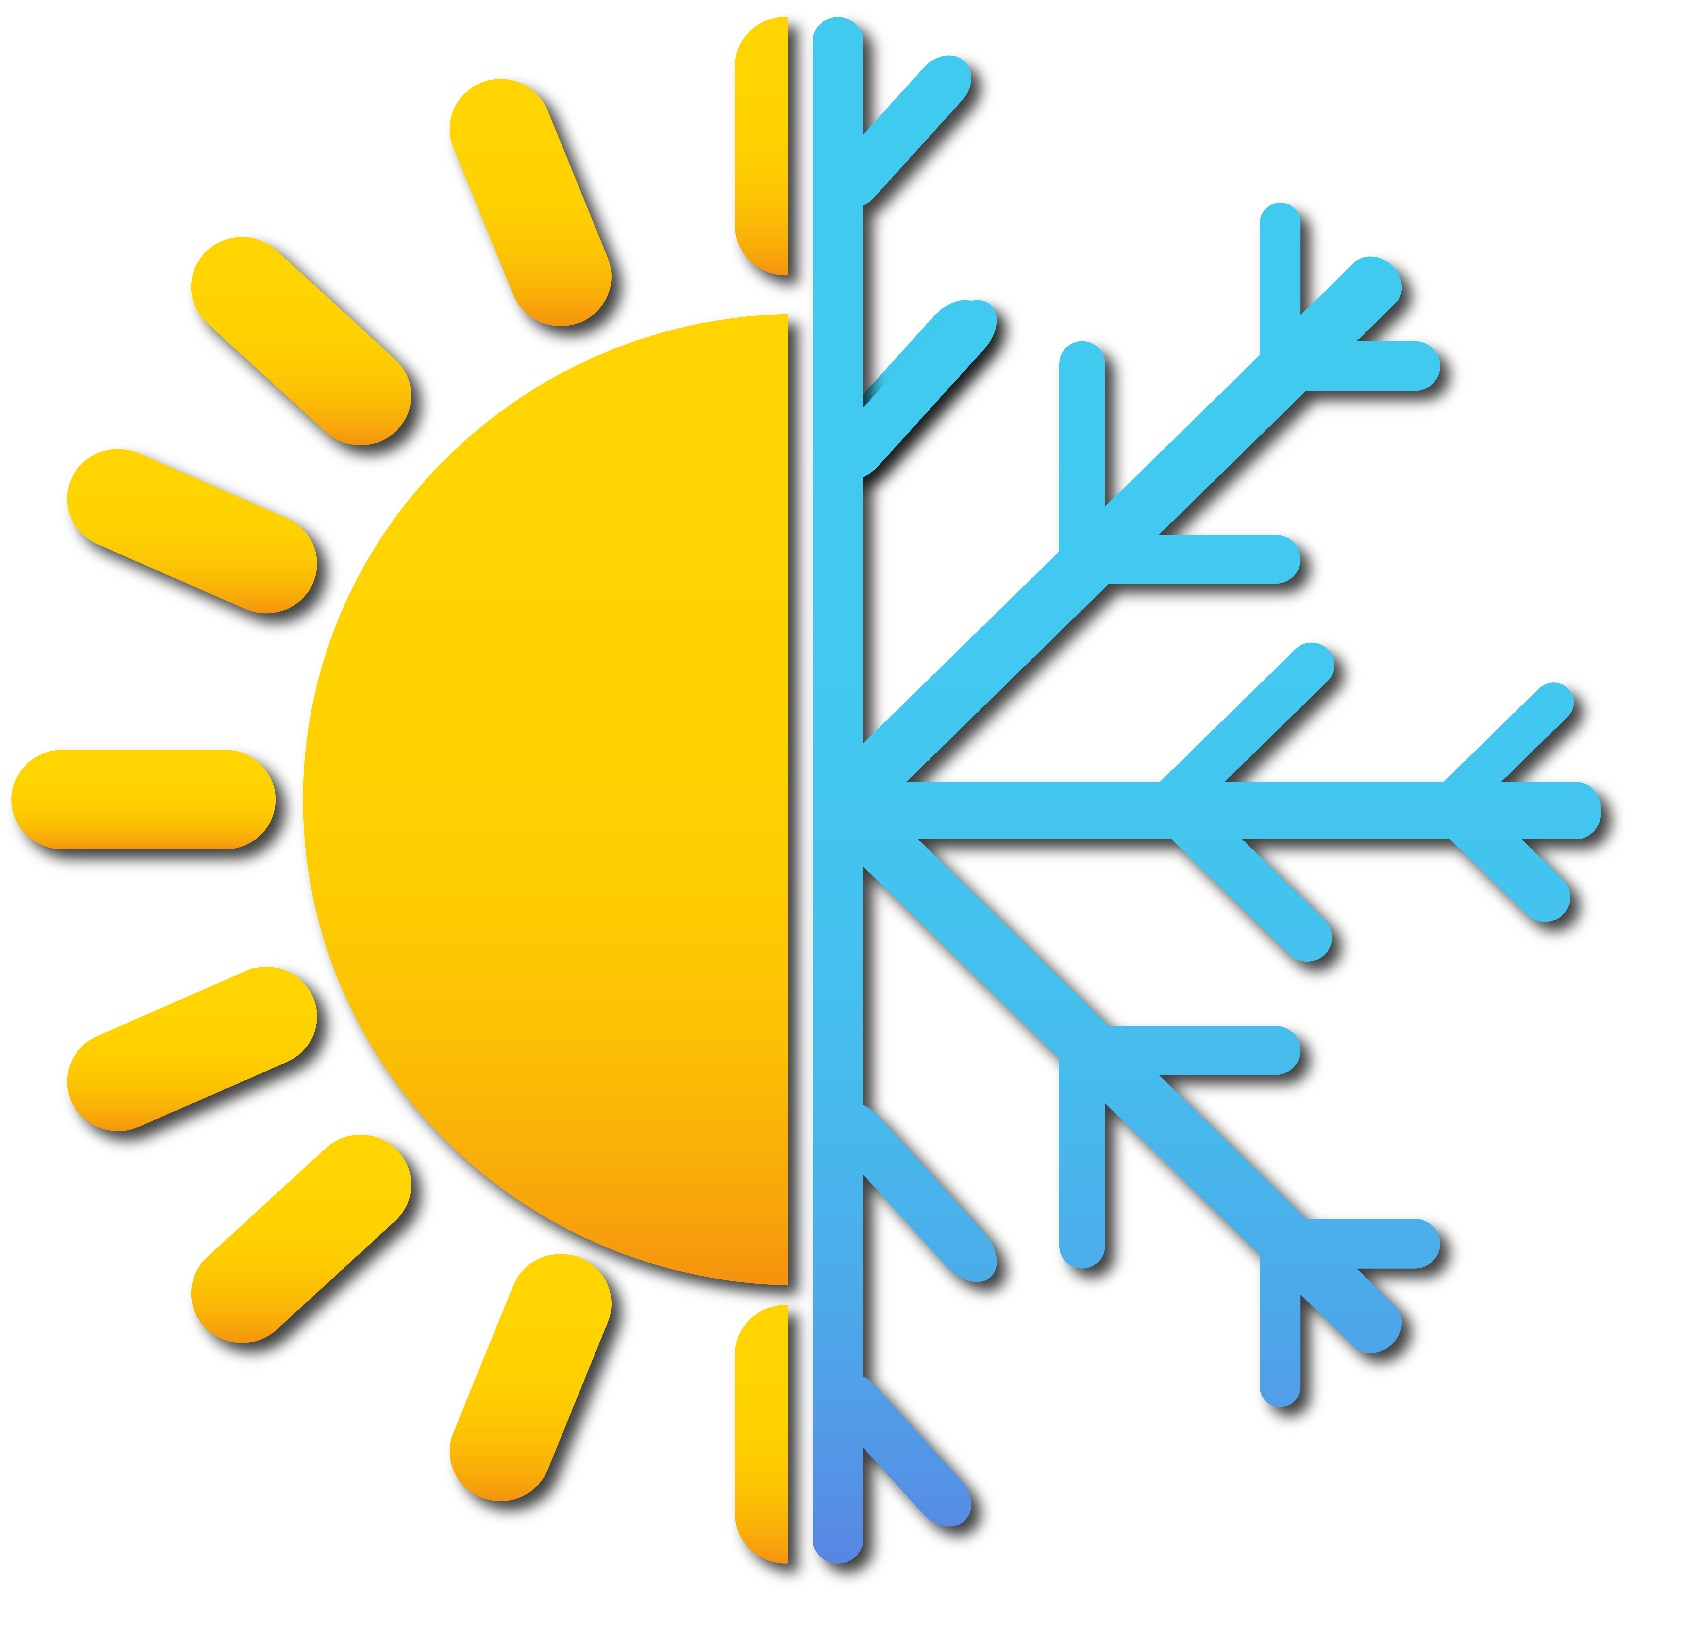 The sun and a snowflake